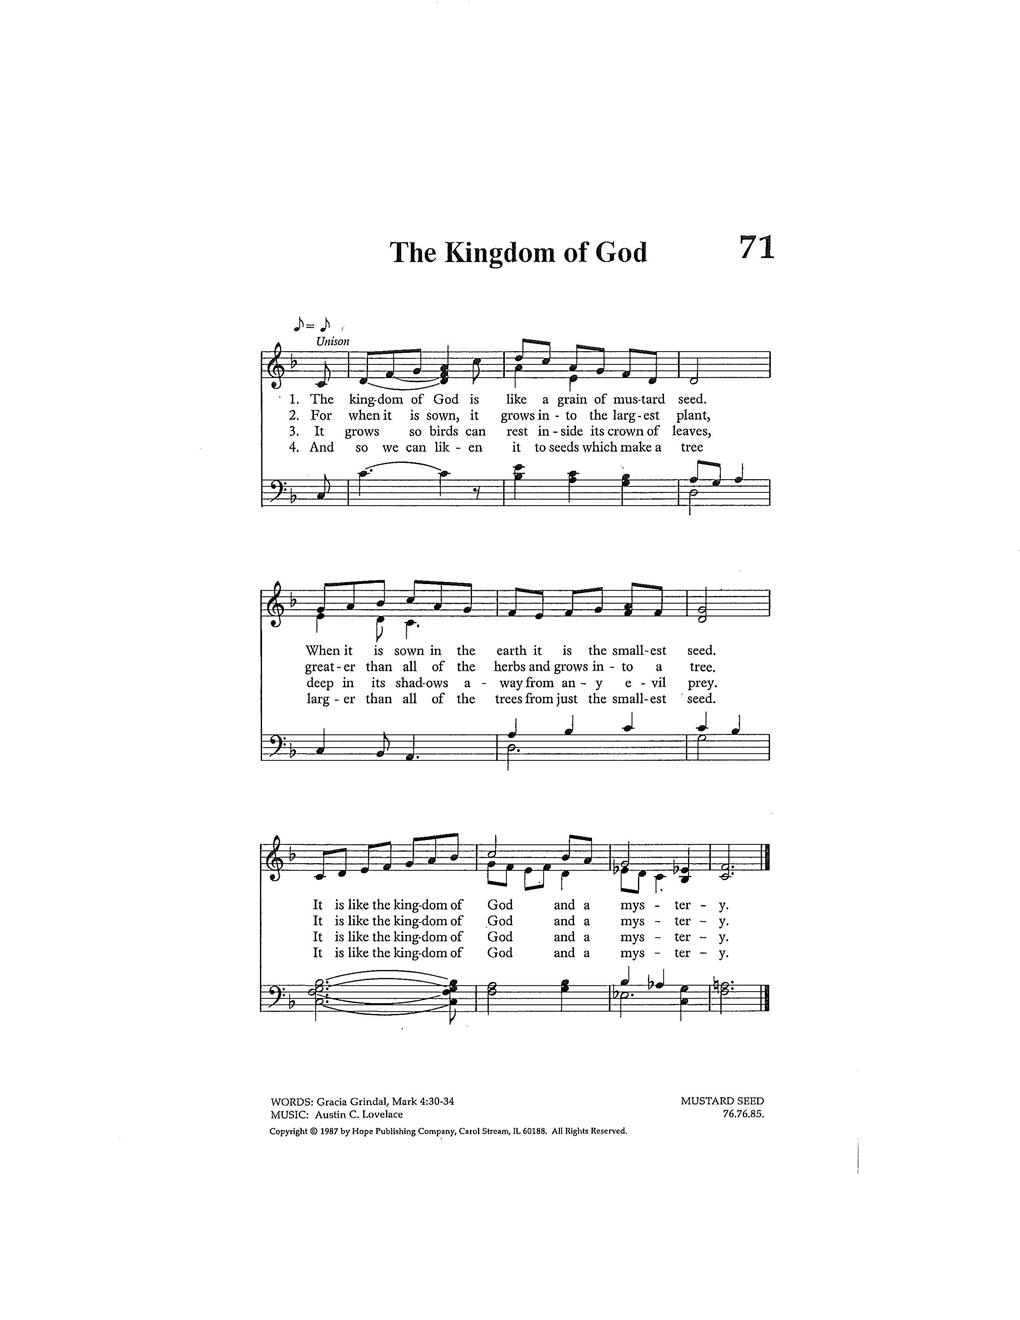 The Kingdom of God Cover Image